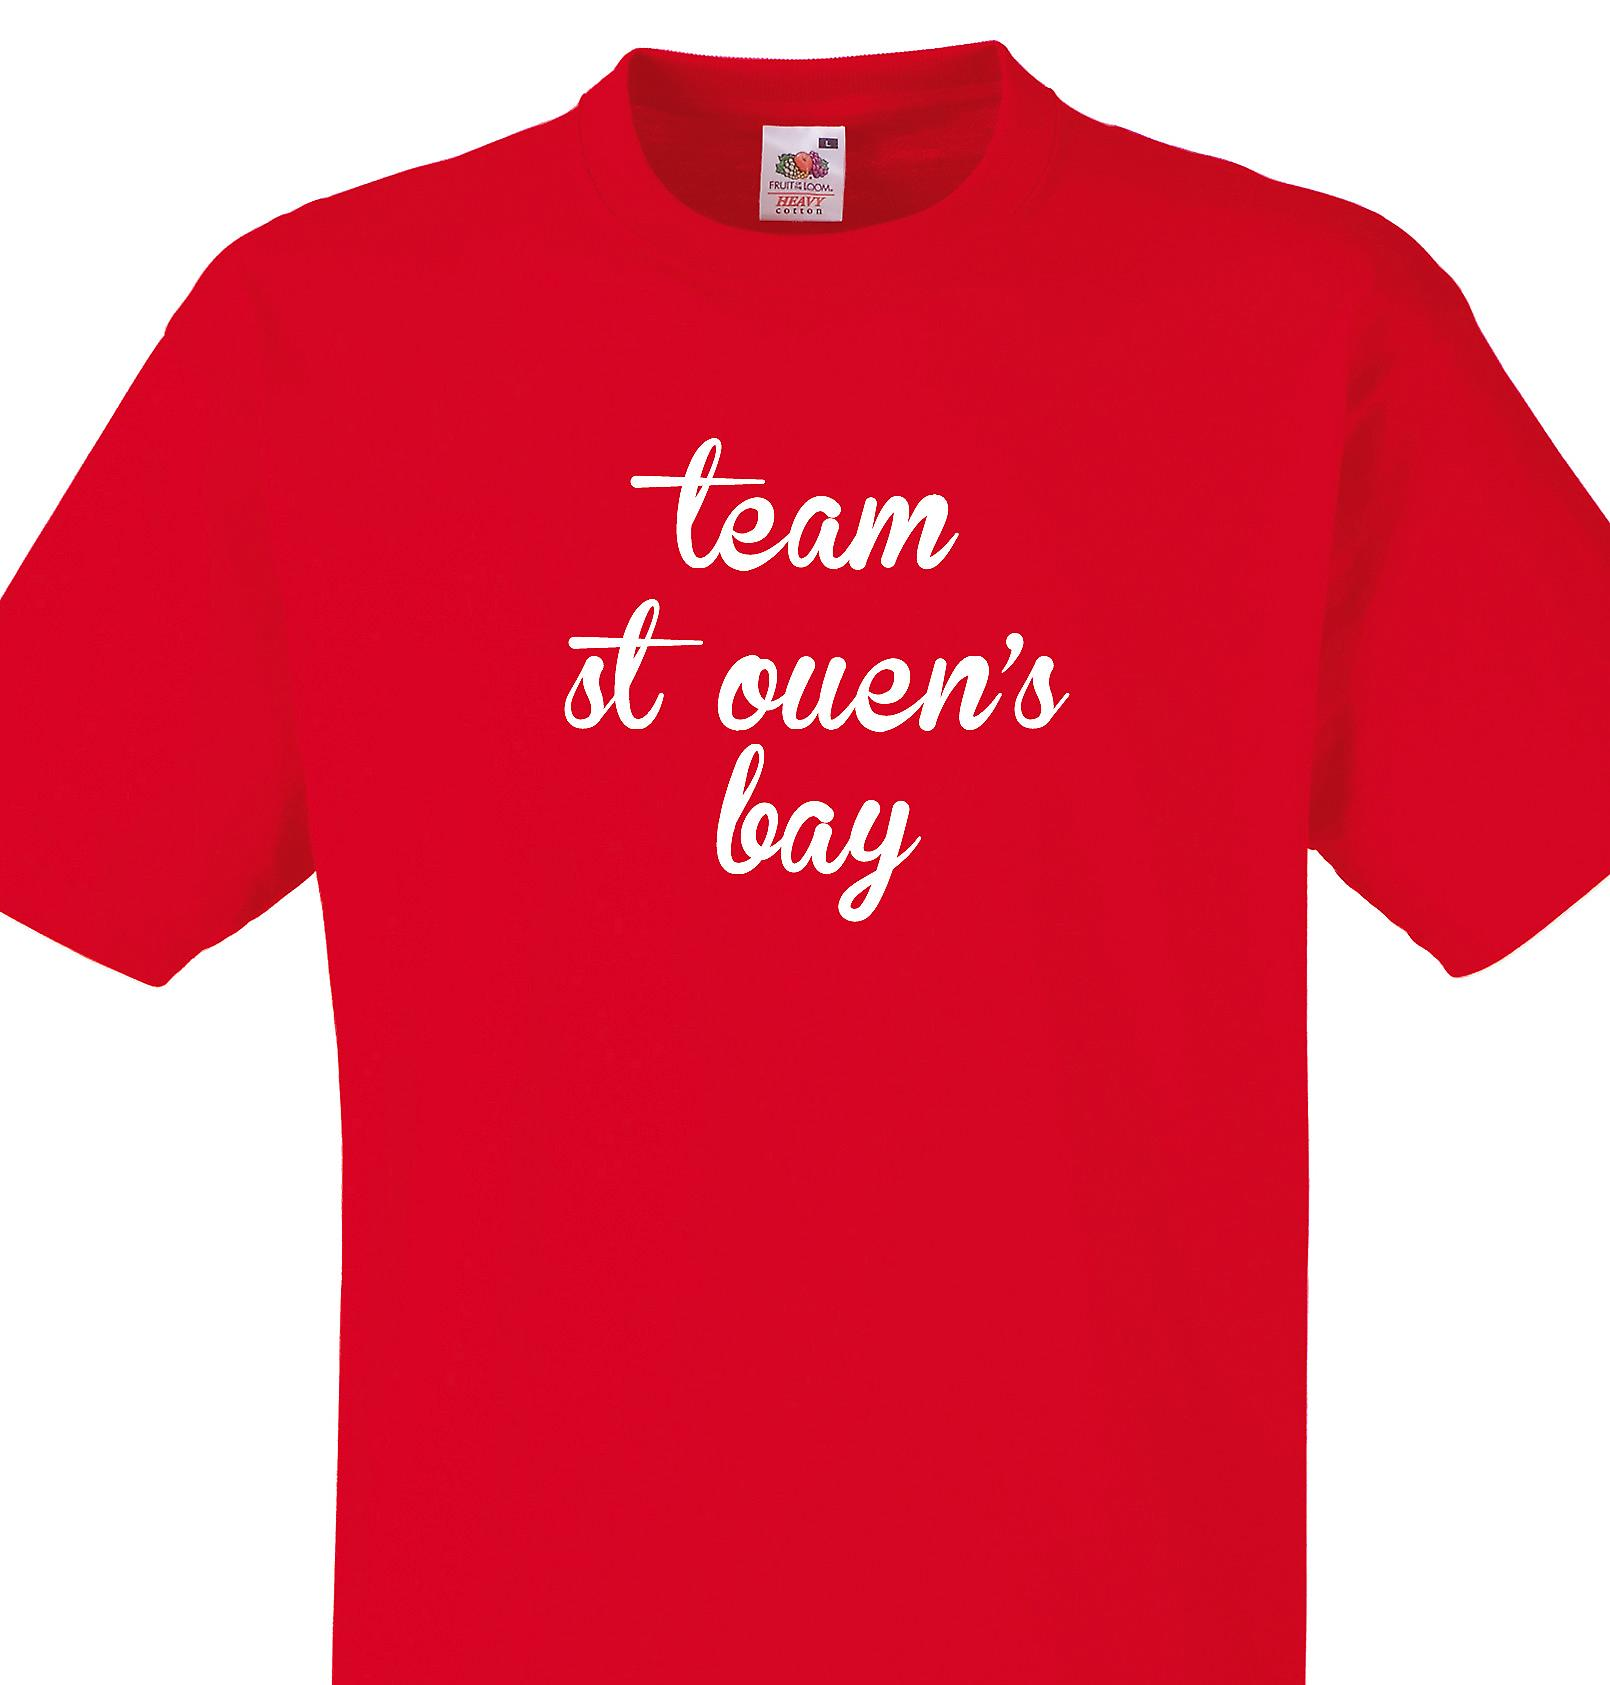 Team St ouen's bay Red T shirt